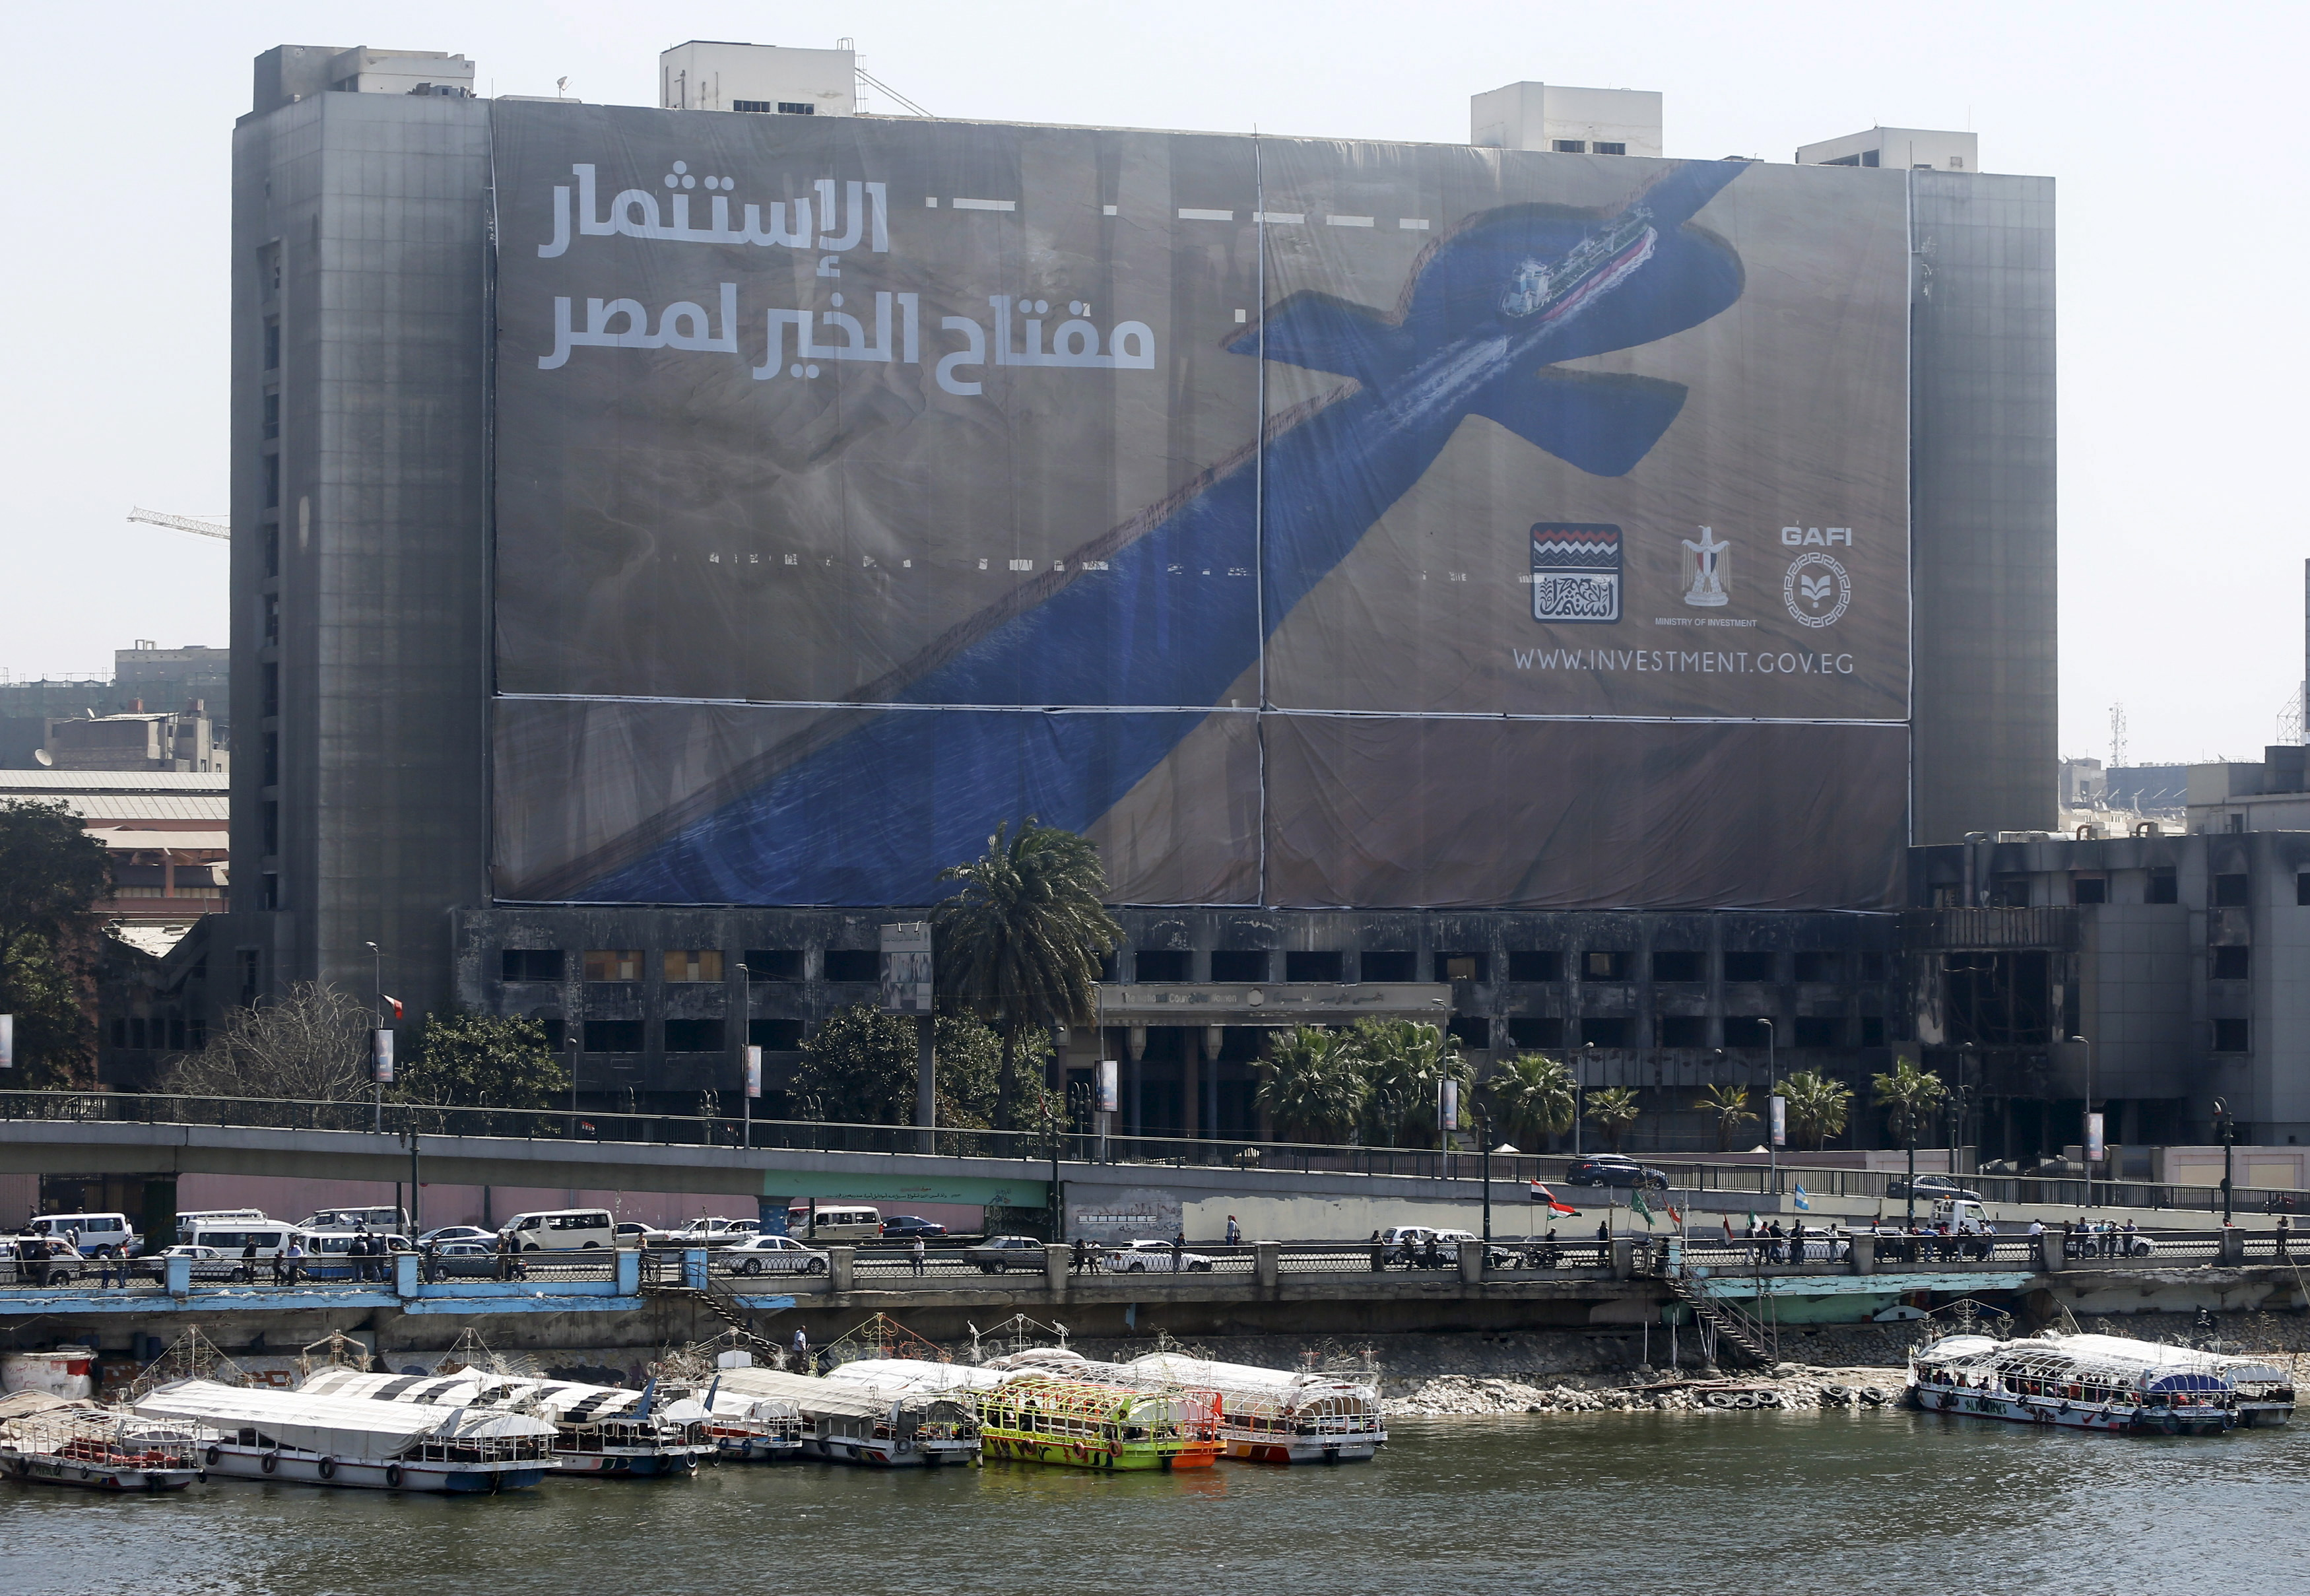 """Boats are docked at the river Nile in front of the burned down headquarters of the National Democratic Party of toppled President Hosni Mubarak in Cairo March 22, 2015. The building, which was burned and gutted during the 2011 uprising, is draped with a banner reading """"Investment is the key to Egypt's prosperity.""""  World Water Day is observed on March 22. REUTERS/Amr Abdallah Dalsh - RTR4UD75"""